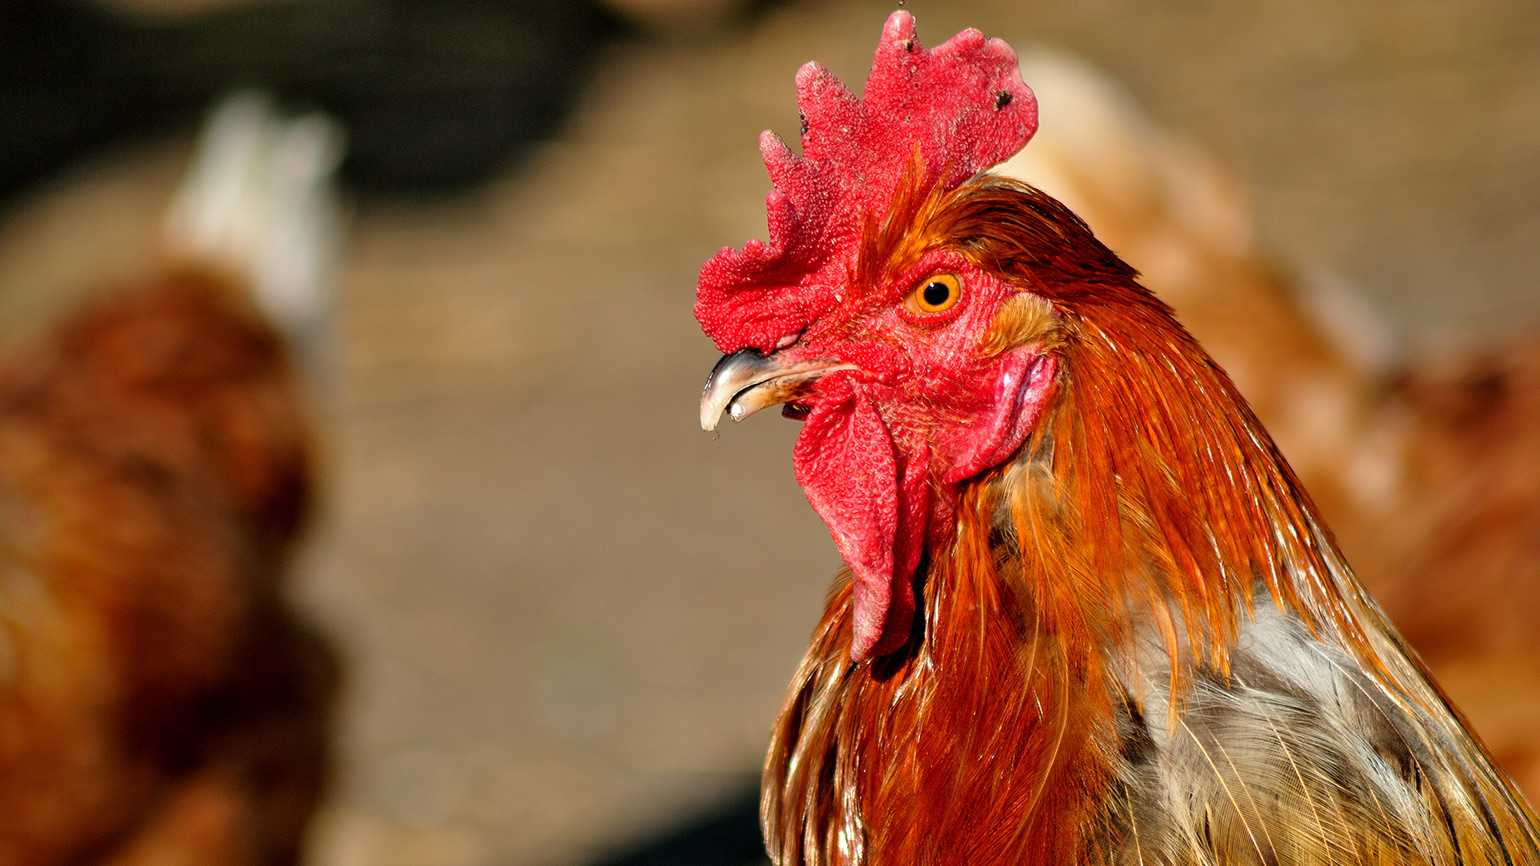 A Rhode Island Red rooster